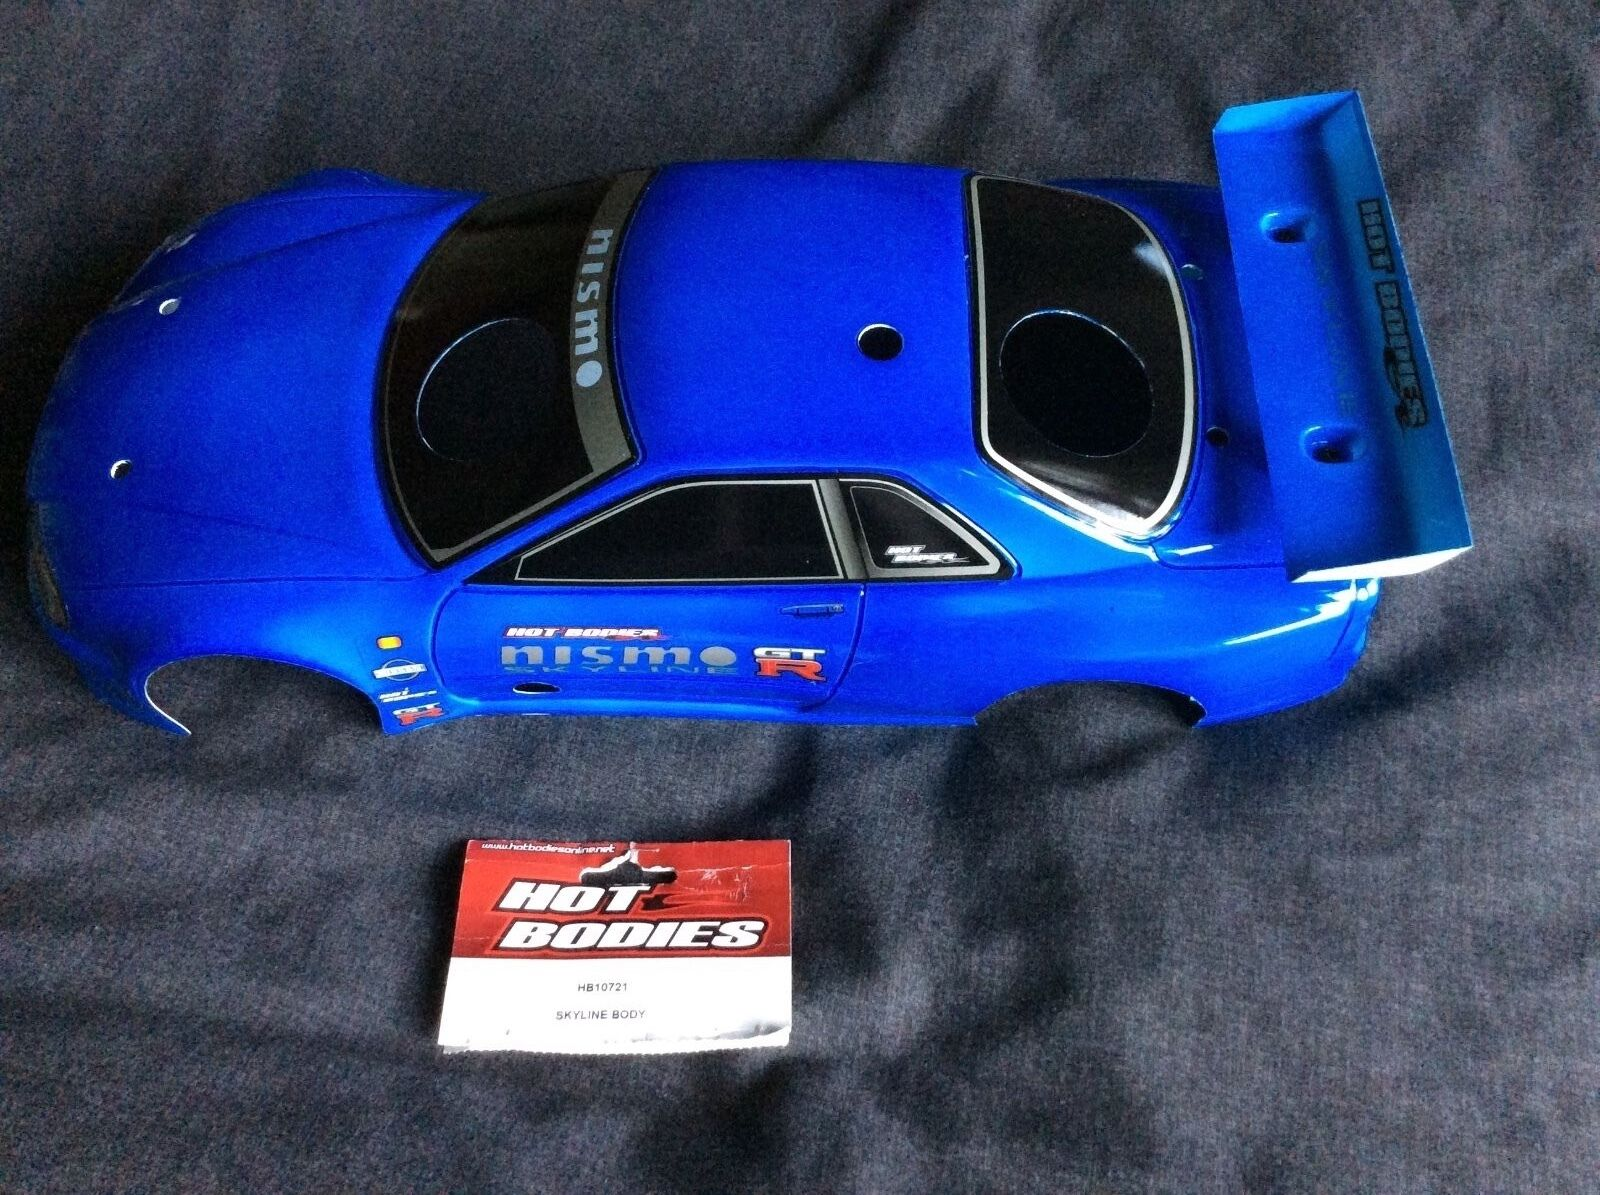 Nissan Skyline GTR, HB10721 Model Car Bodyshell,Painted and Trimmed,200mm NIP